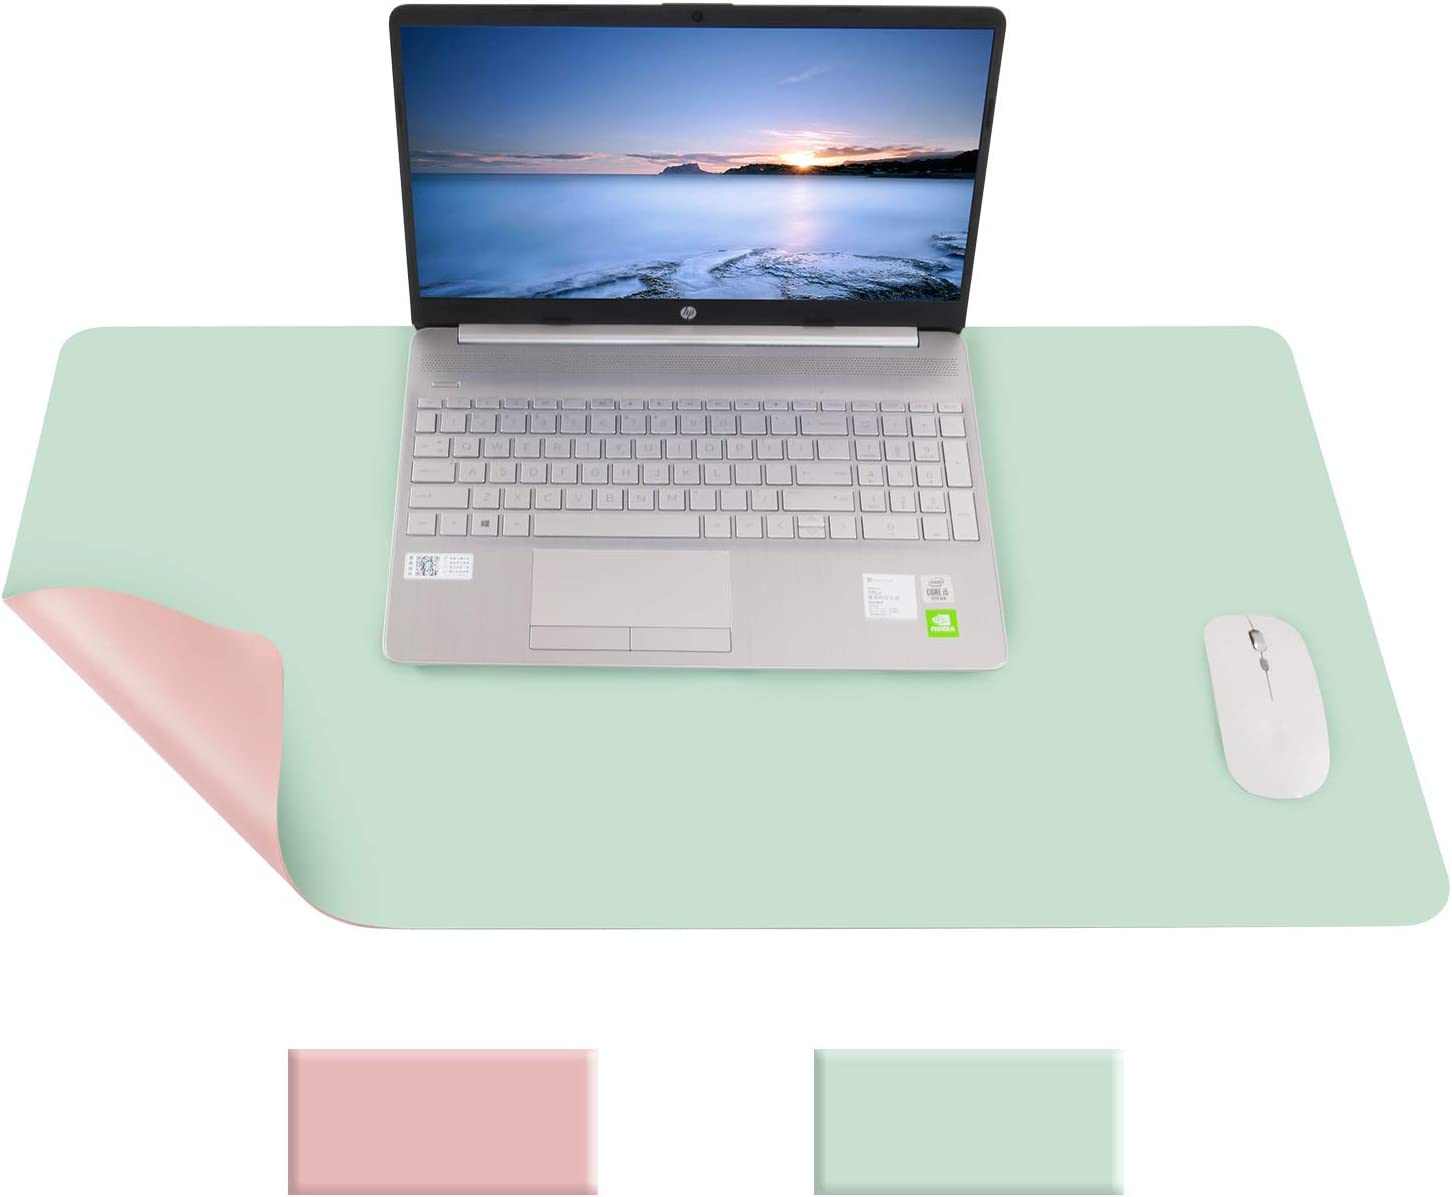 HemannTECH Double Sided PU Leather Desk Pad Protector, Large Smooth Mouse Pad, Coffee Pad, Scratch-Proof, Non Slip, Waterproof, Easy Clean, Ultra Thin Desk Mat (Apple Green+Pink, 23.6